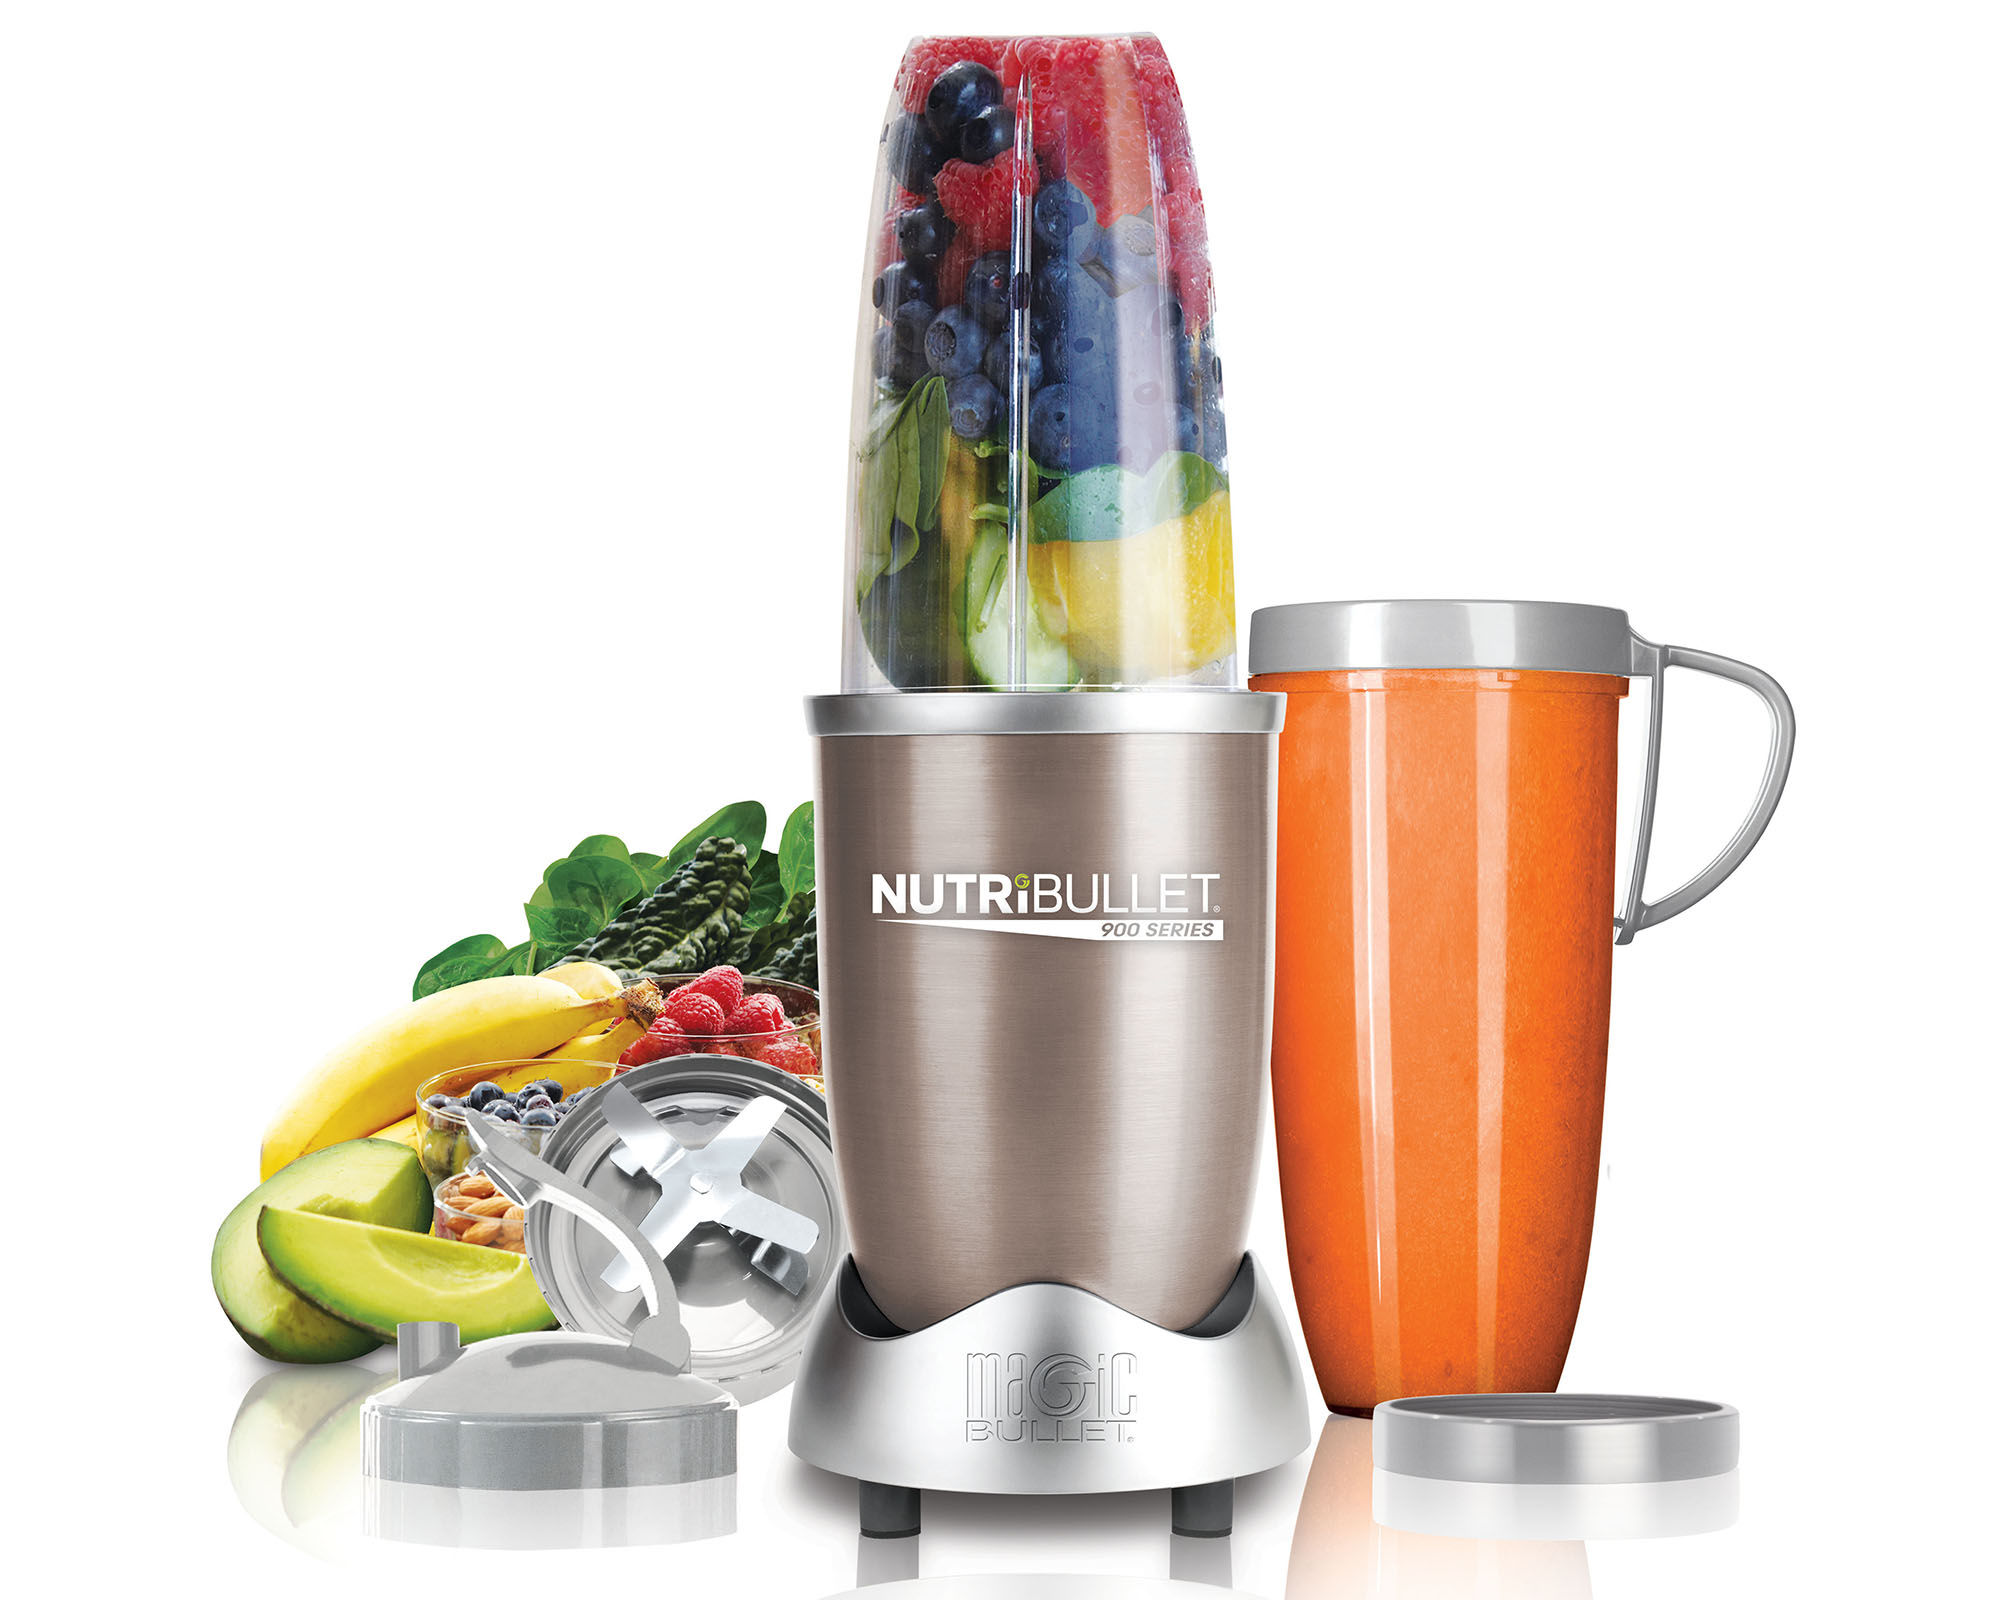 NutriBullet Pro 900 Series Bullet Blender